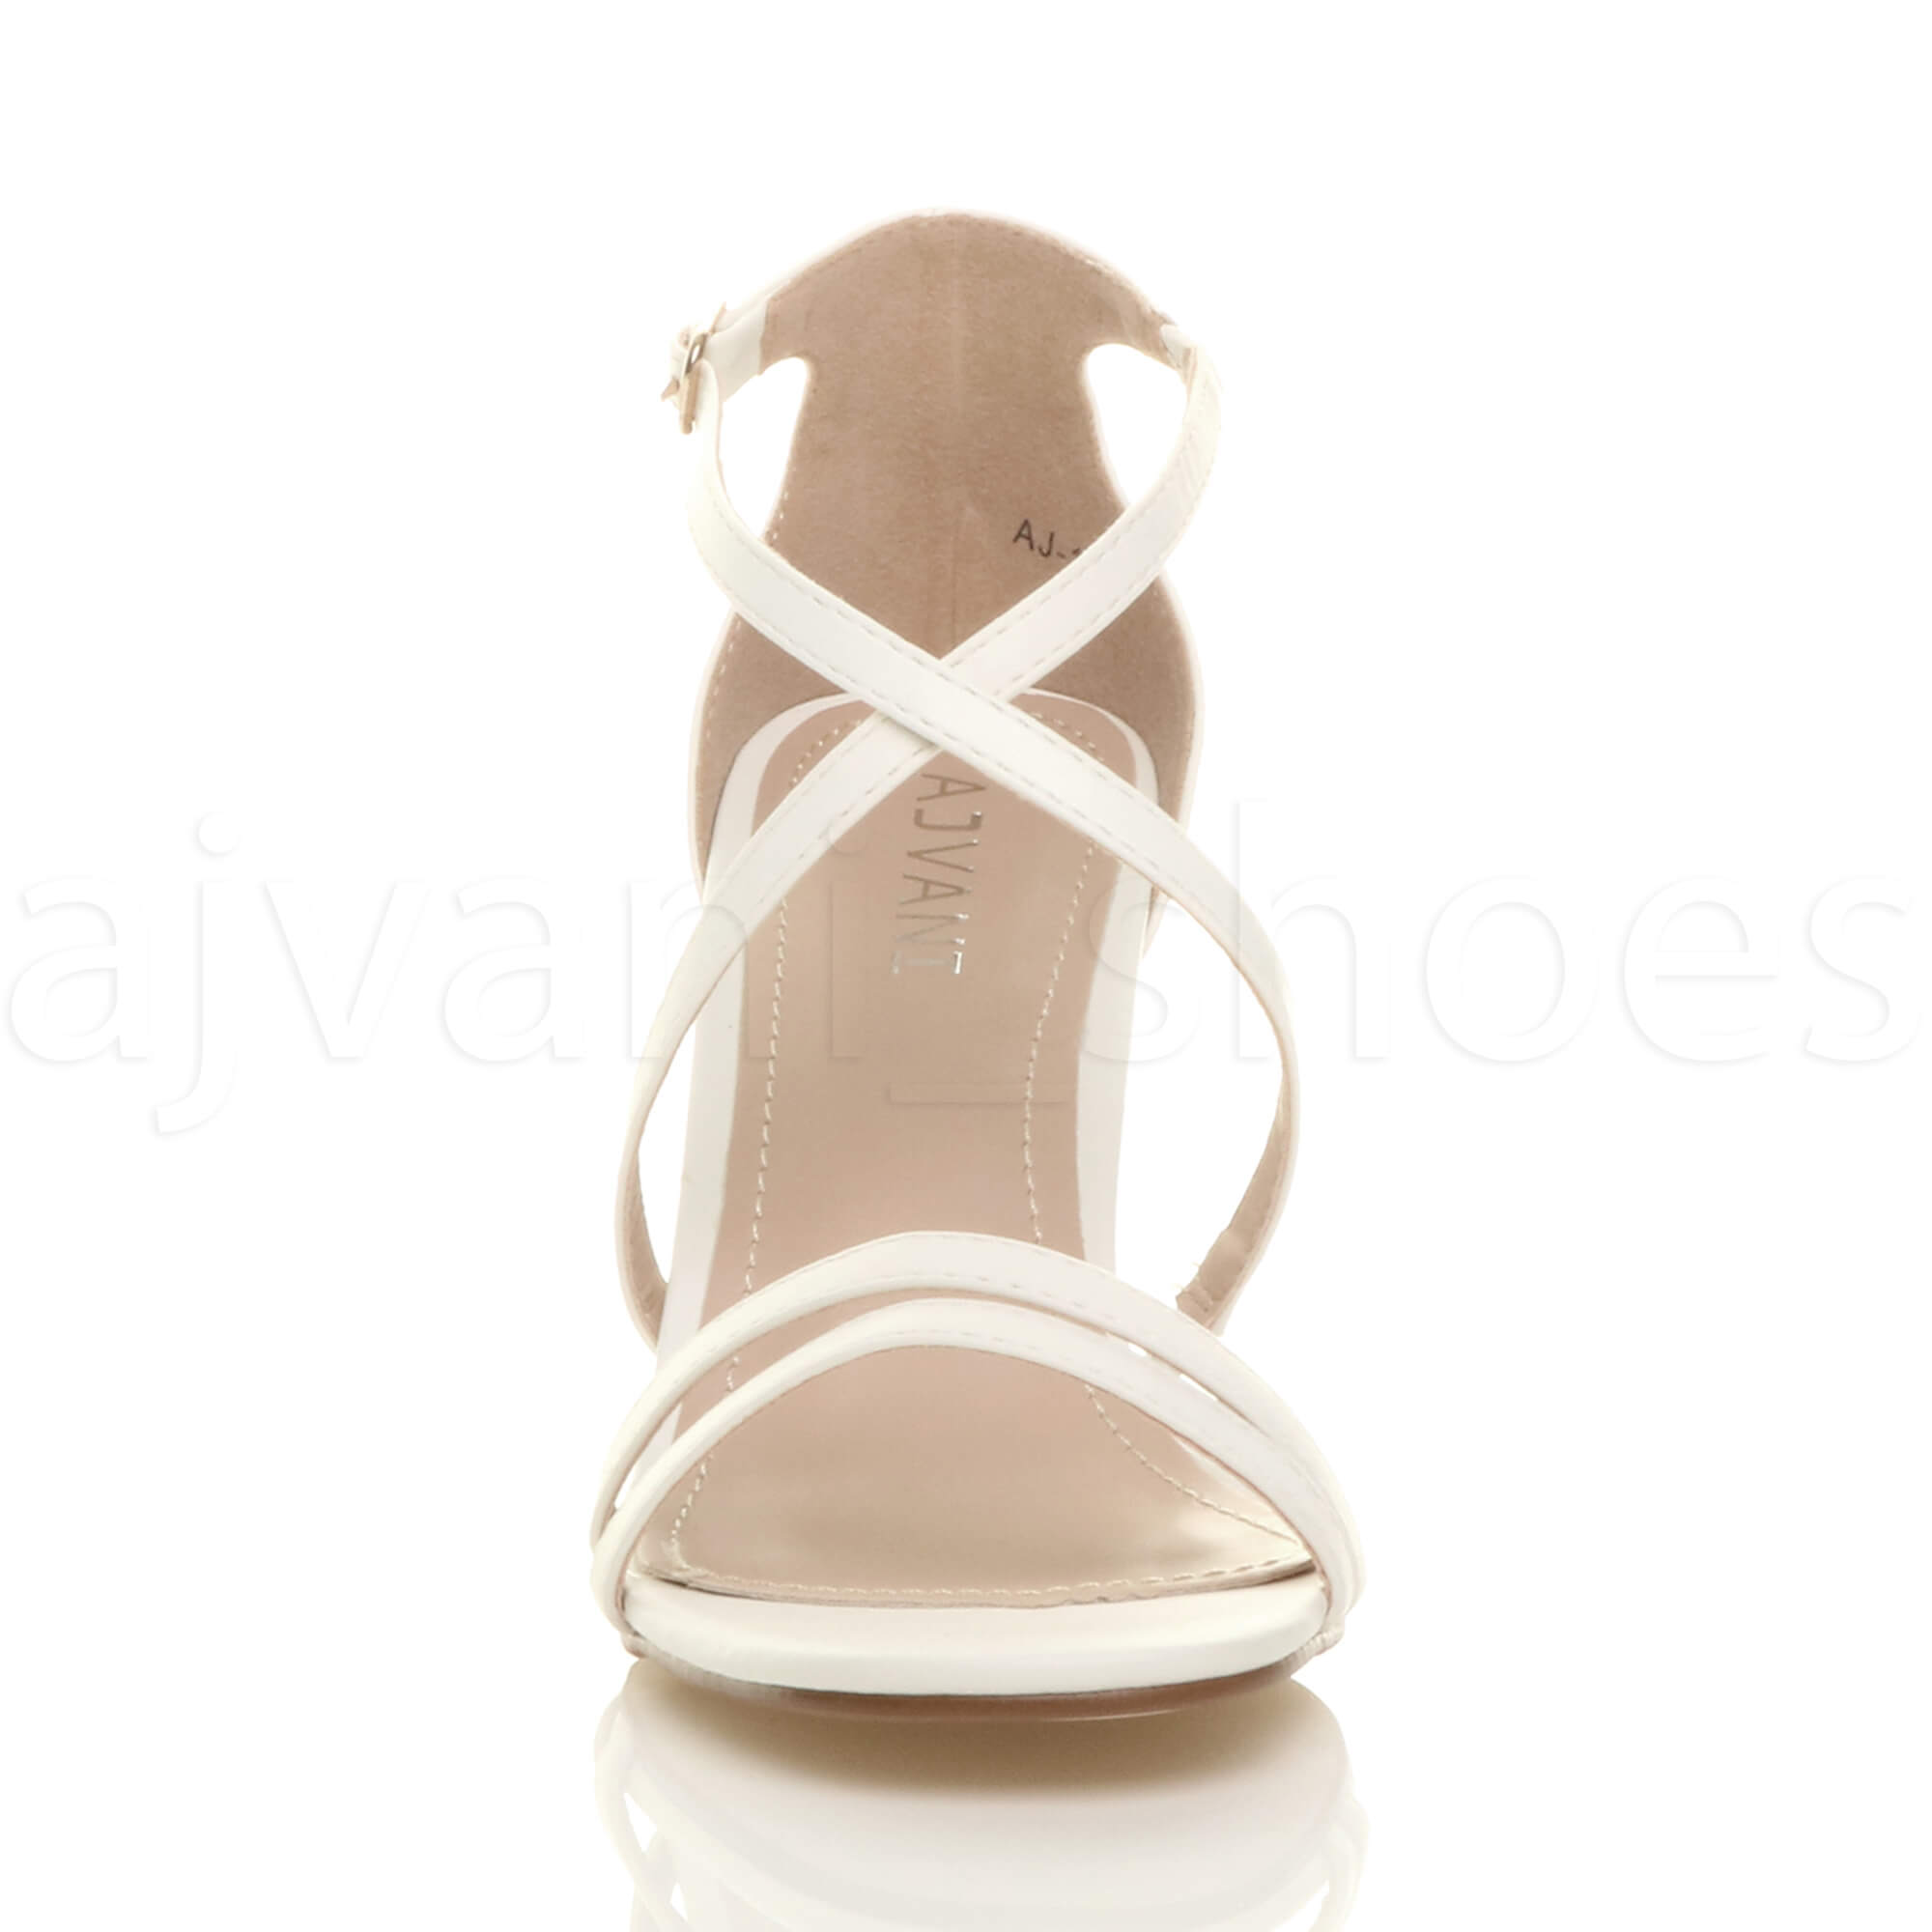 WOMENS-LADIES-MID-HIGH-HEEL-STRAPPY-CROSSOVER-WEDDING-PROM-SANDALS-SHOES-SIZE thumbnail 167